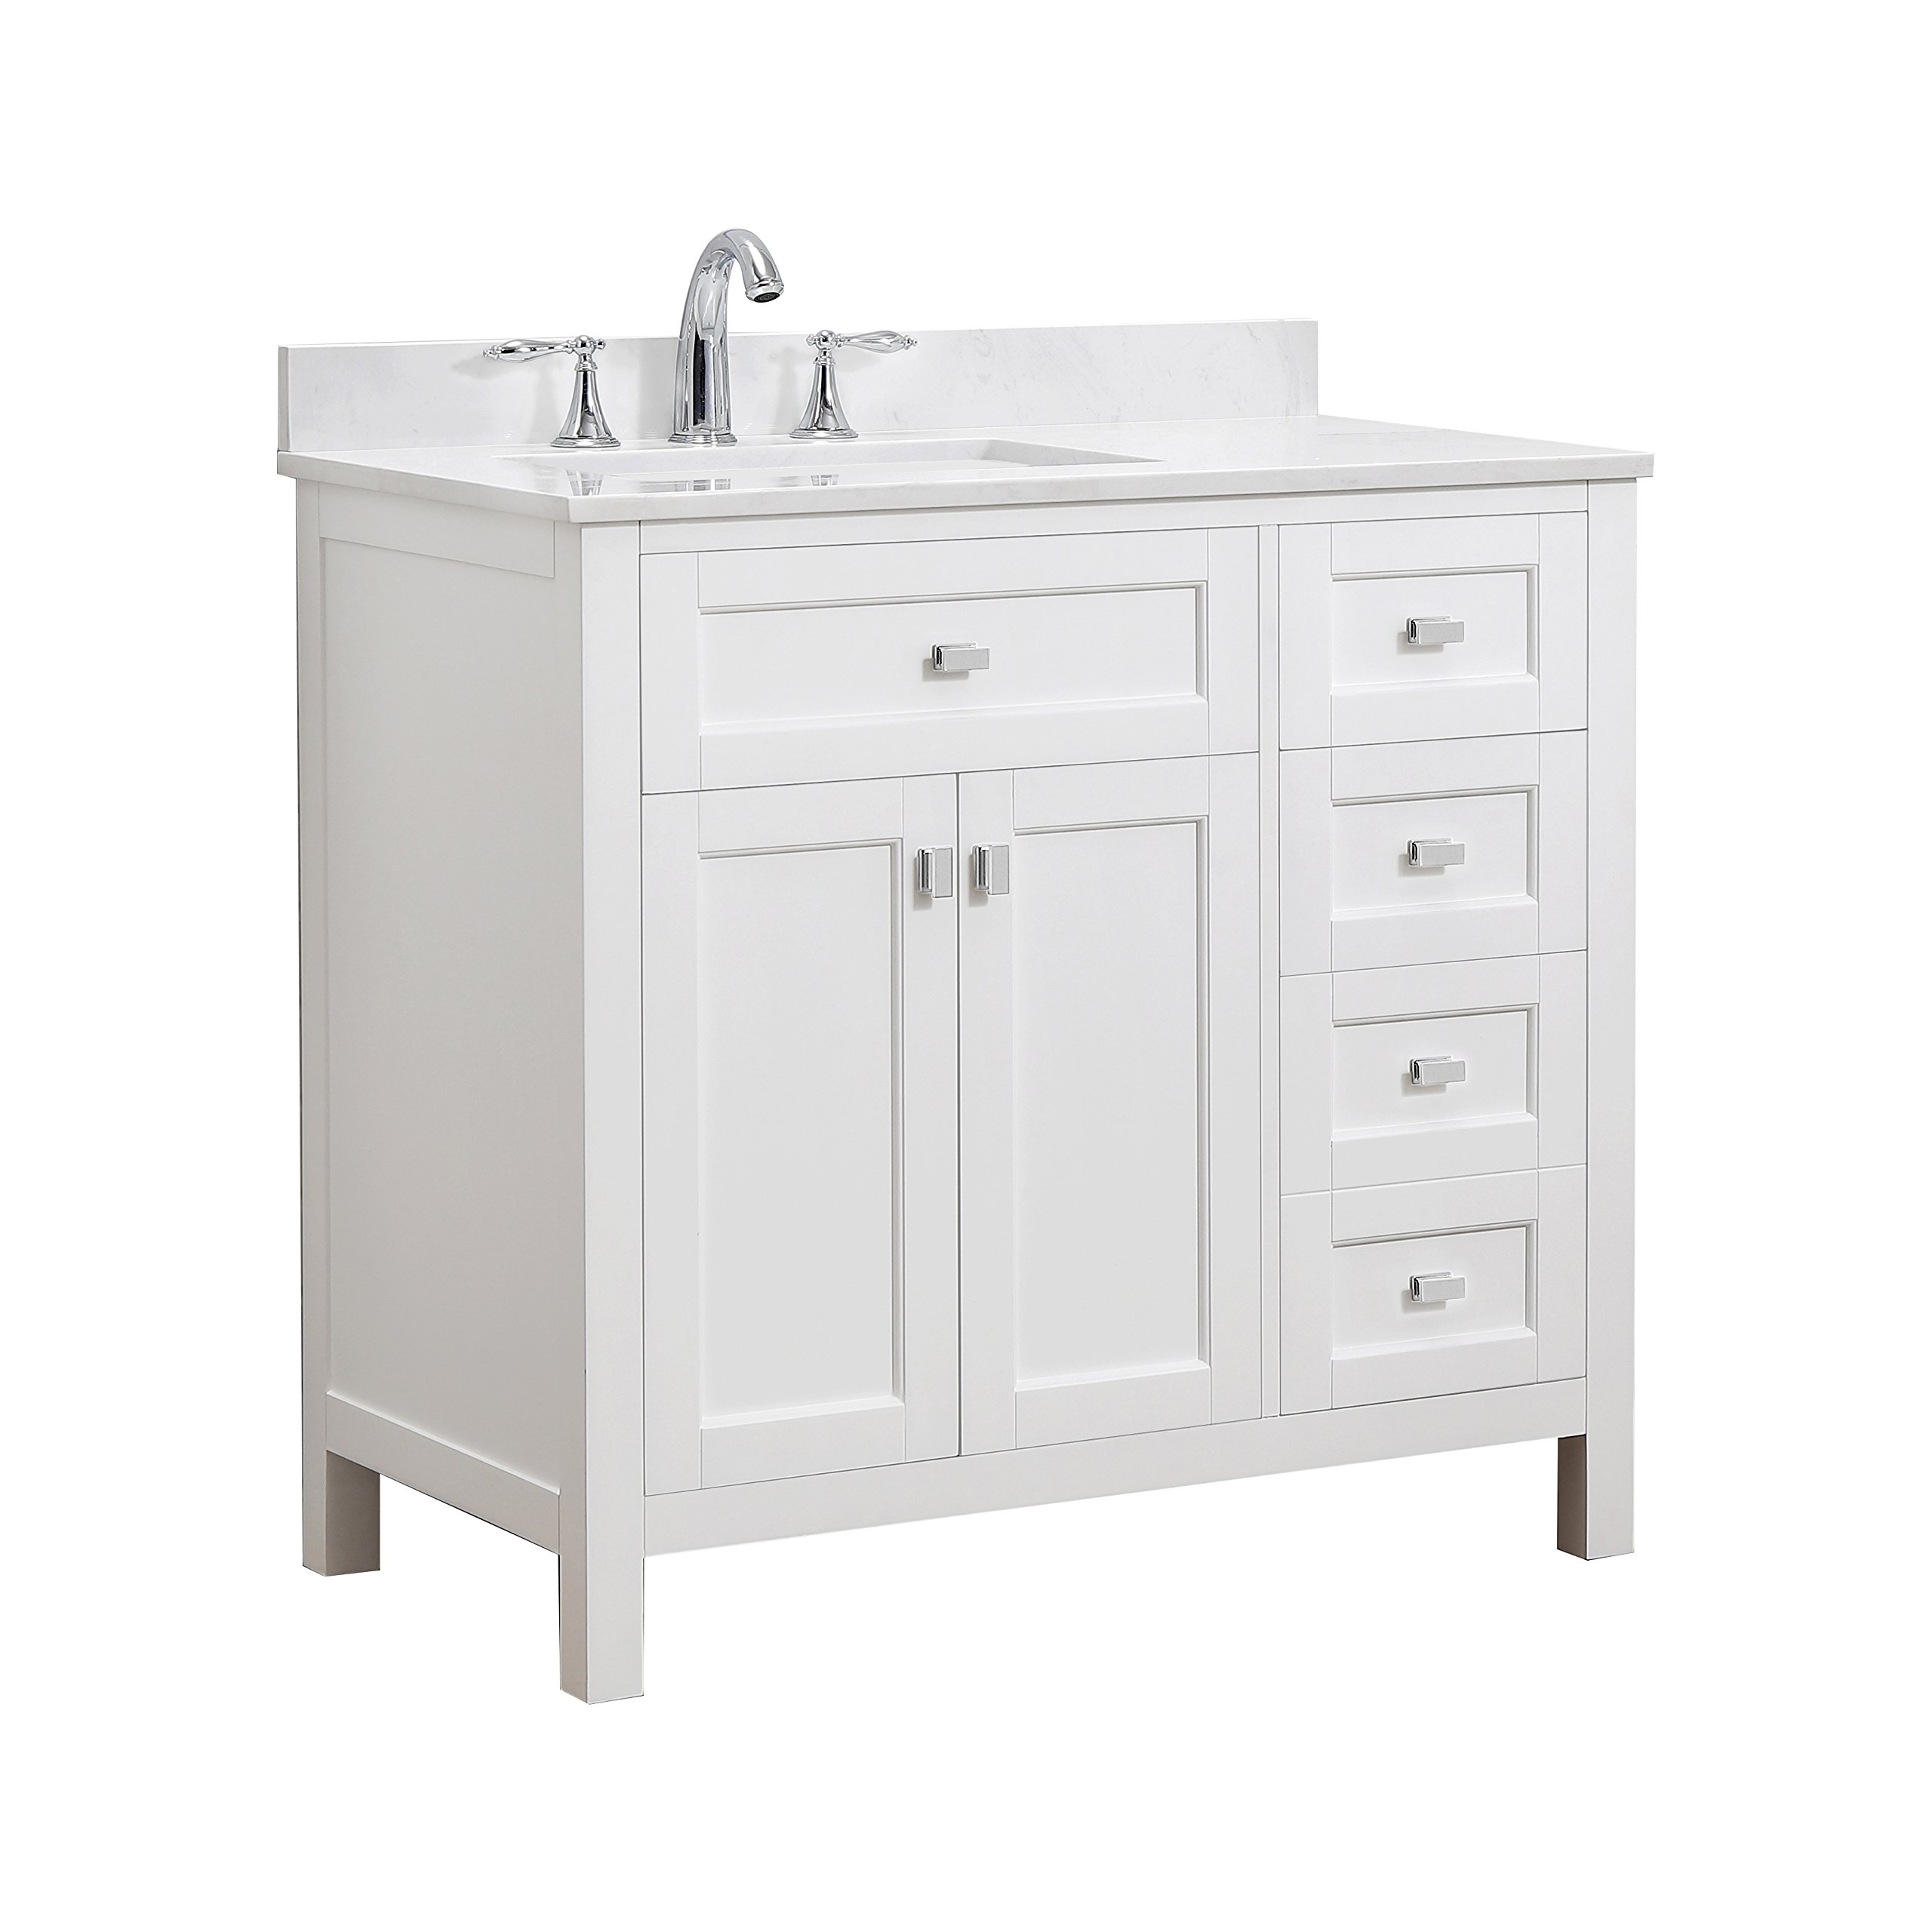 CAHABA CA101010 Juniper Collection Vanity with Top, White Vanity/White Top/White Basin by CAHABA (Image #1)